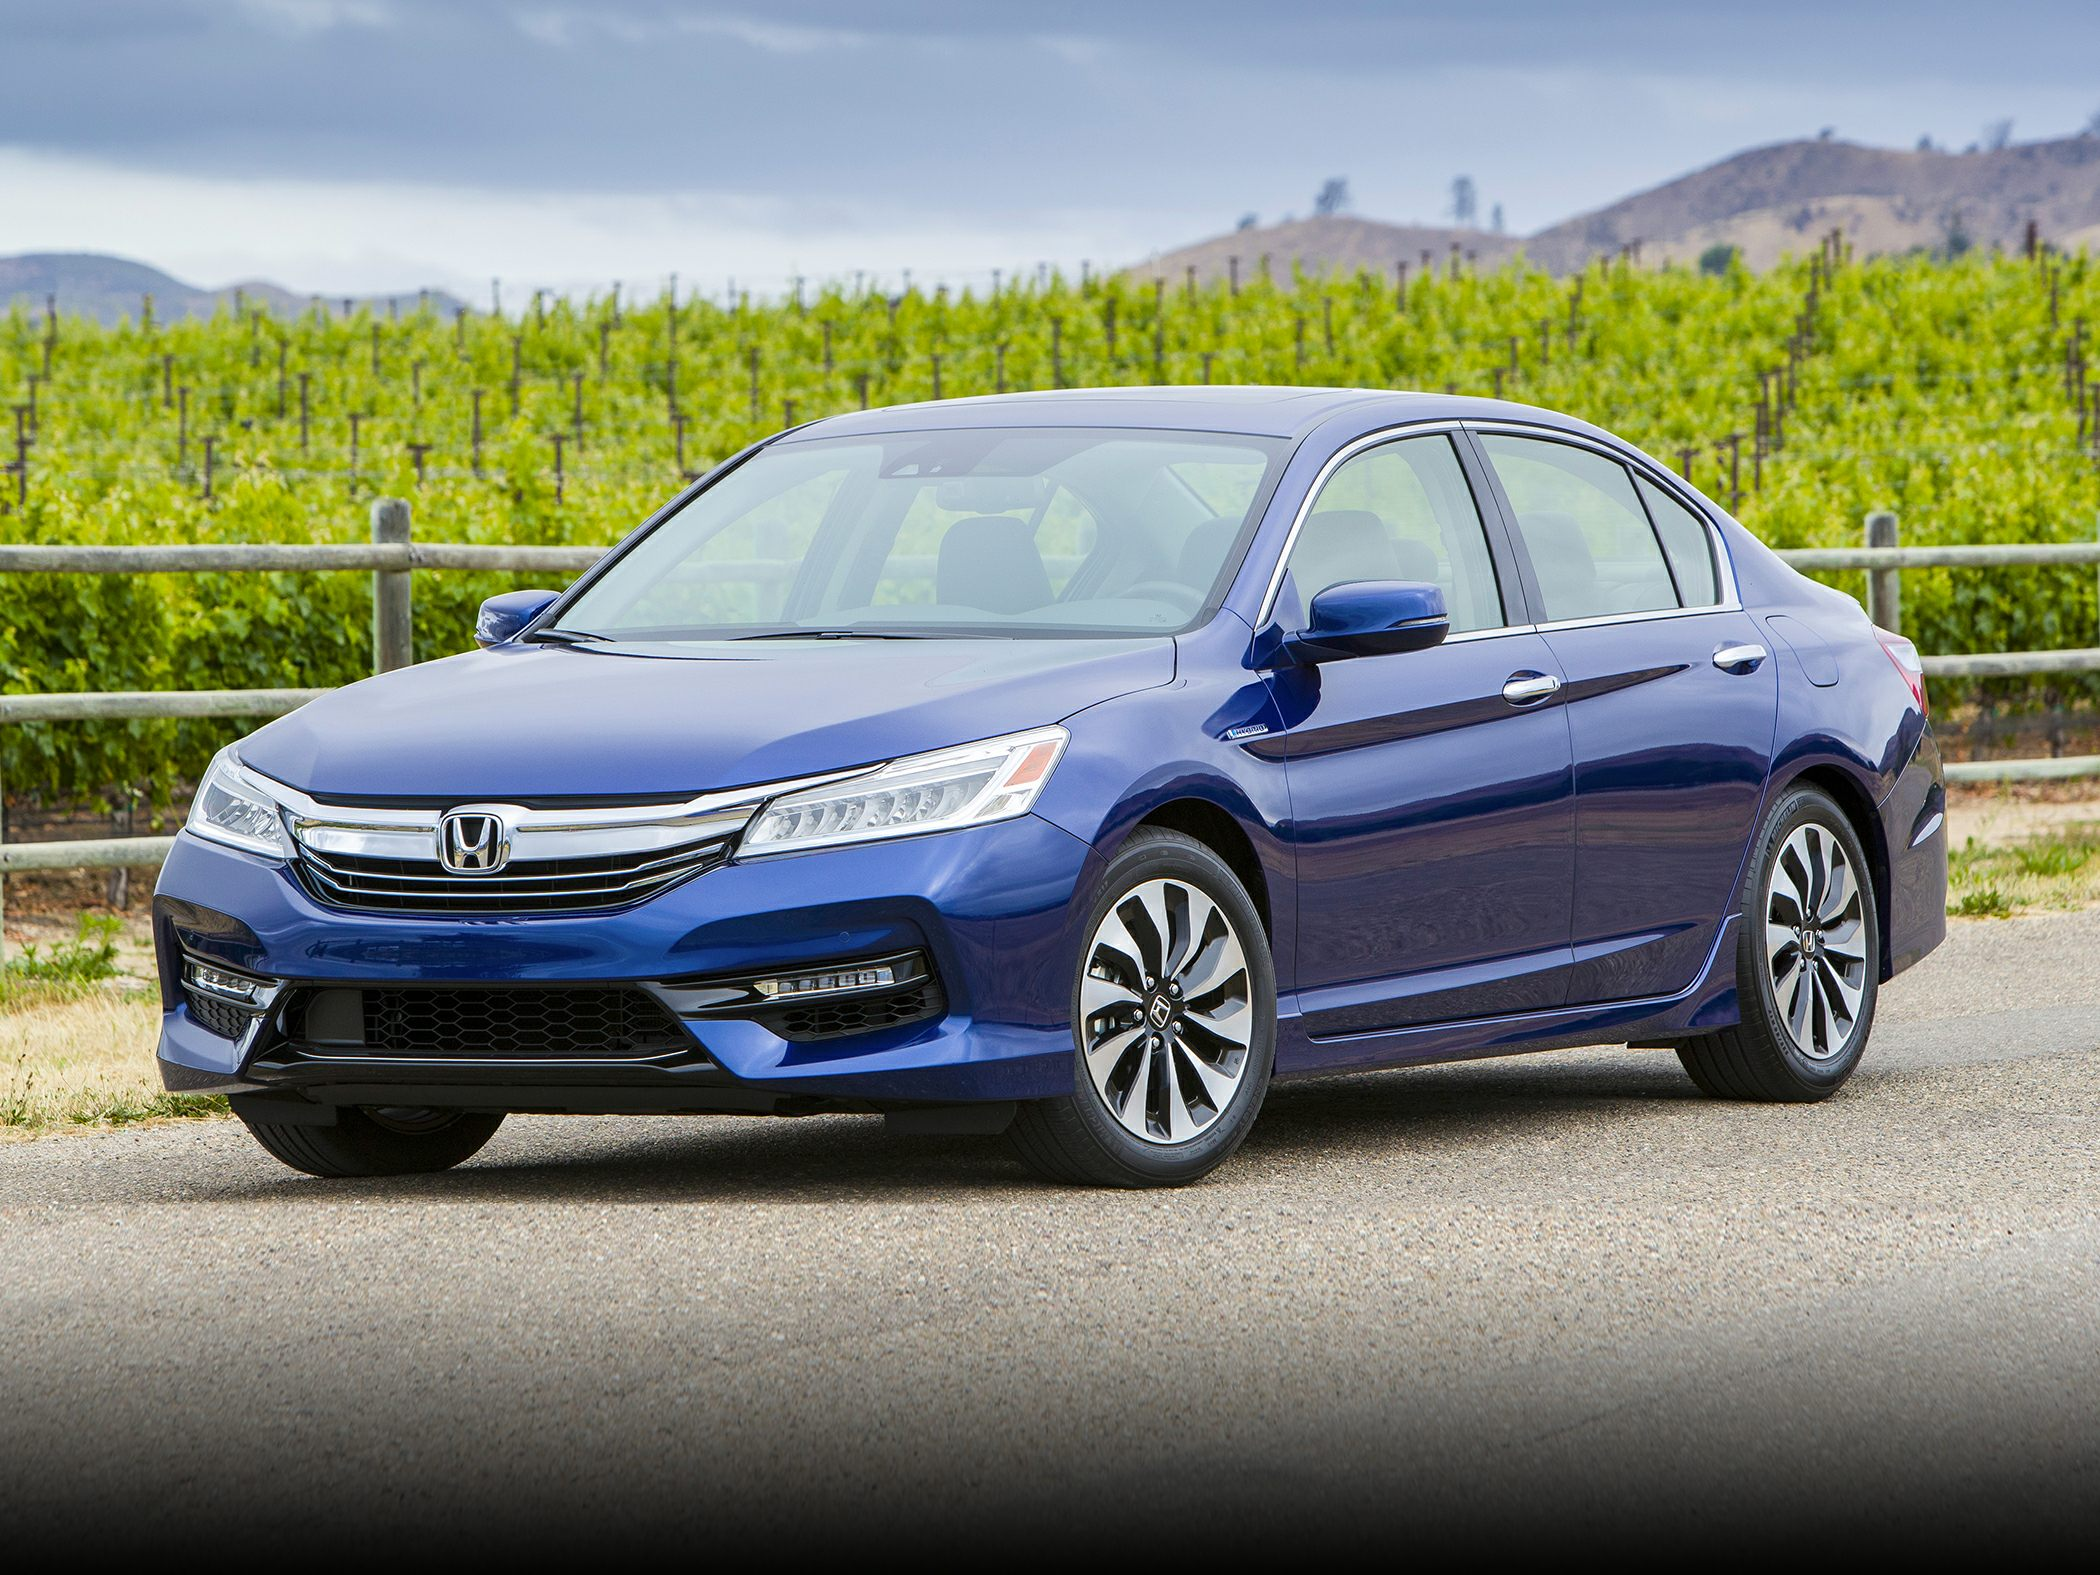 Image Result For Honda Accord Lease Best Deal